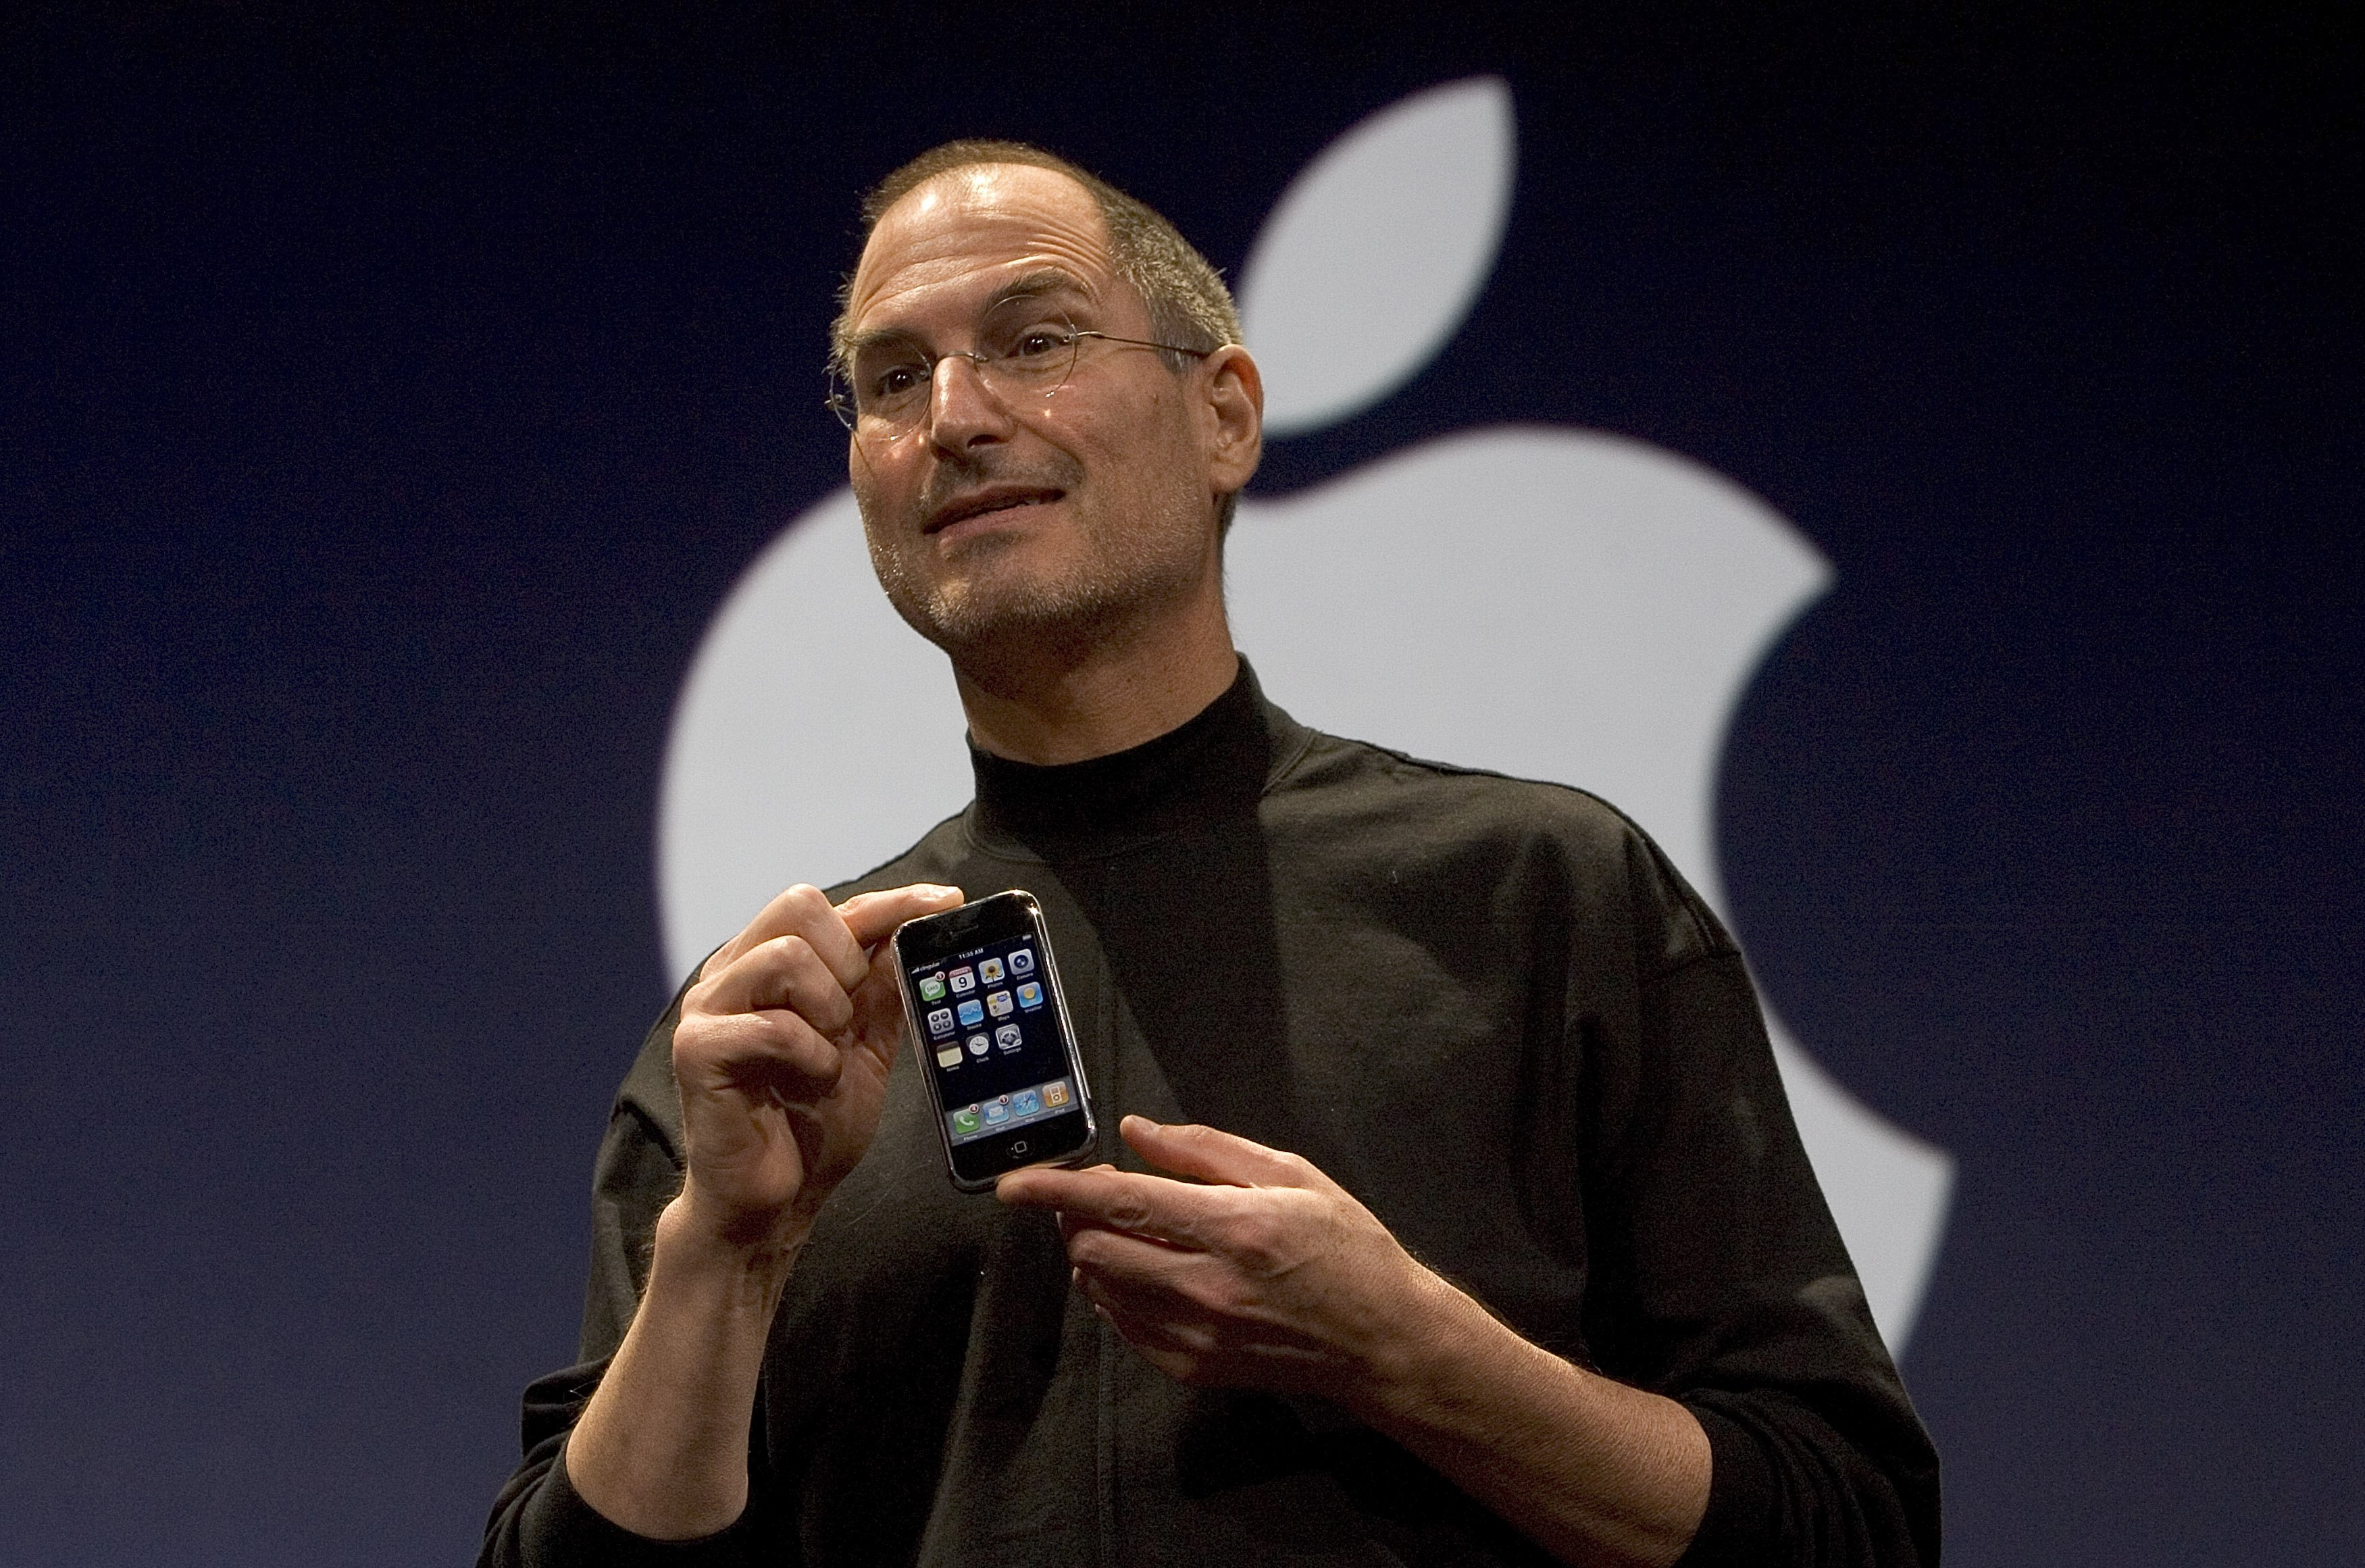 Apple CEO Steve Jobs holds up the new iPhone that was introduced at Macworld on January 9, 2007 in San Francisco.